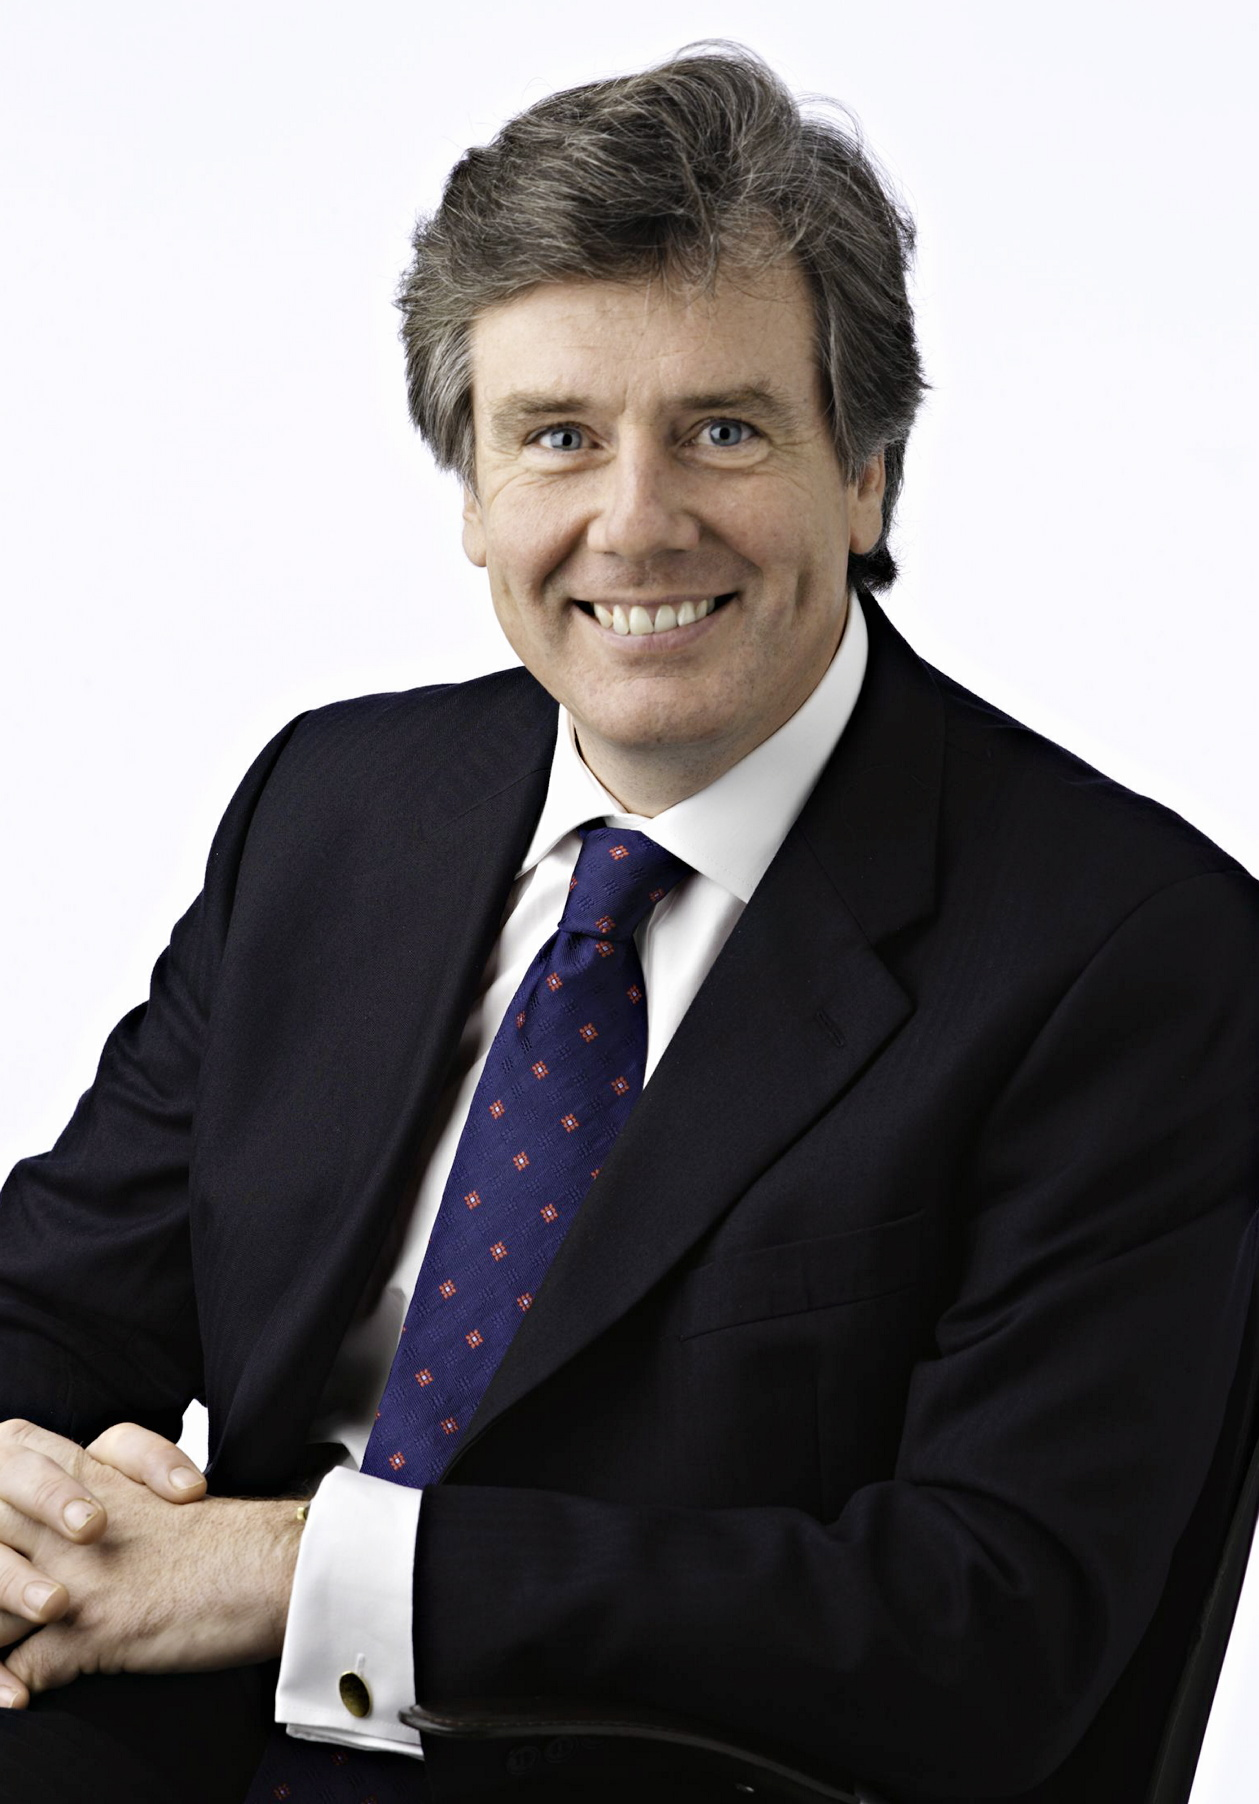 MP Neil Carmichael praises drop in year-on-year unemployment in Stroud